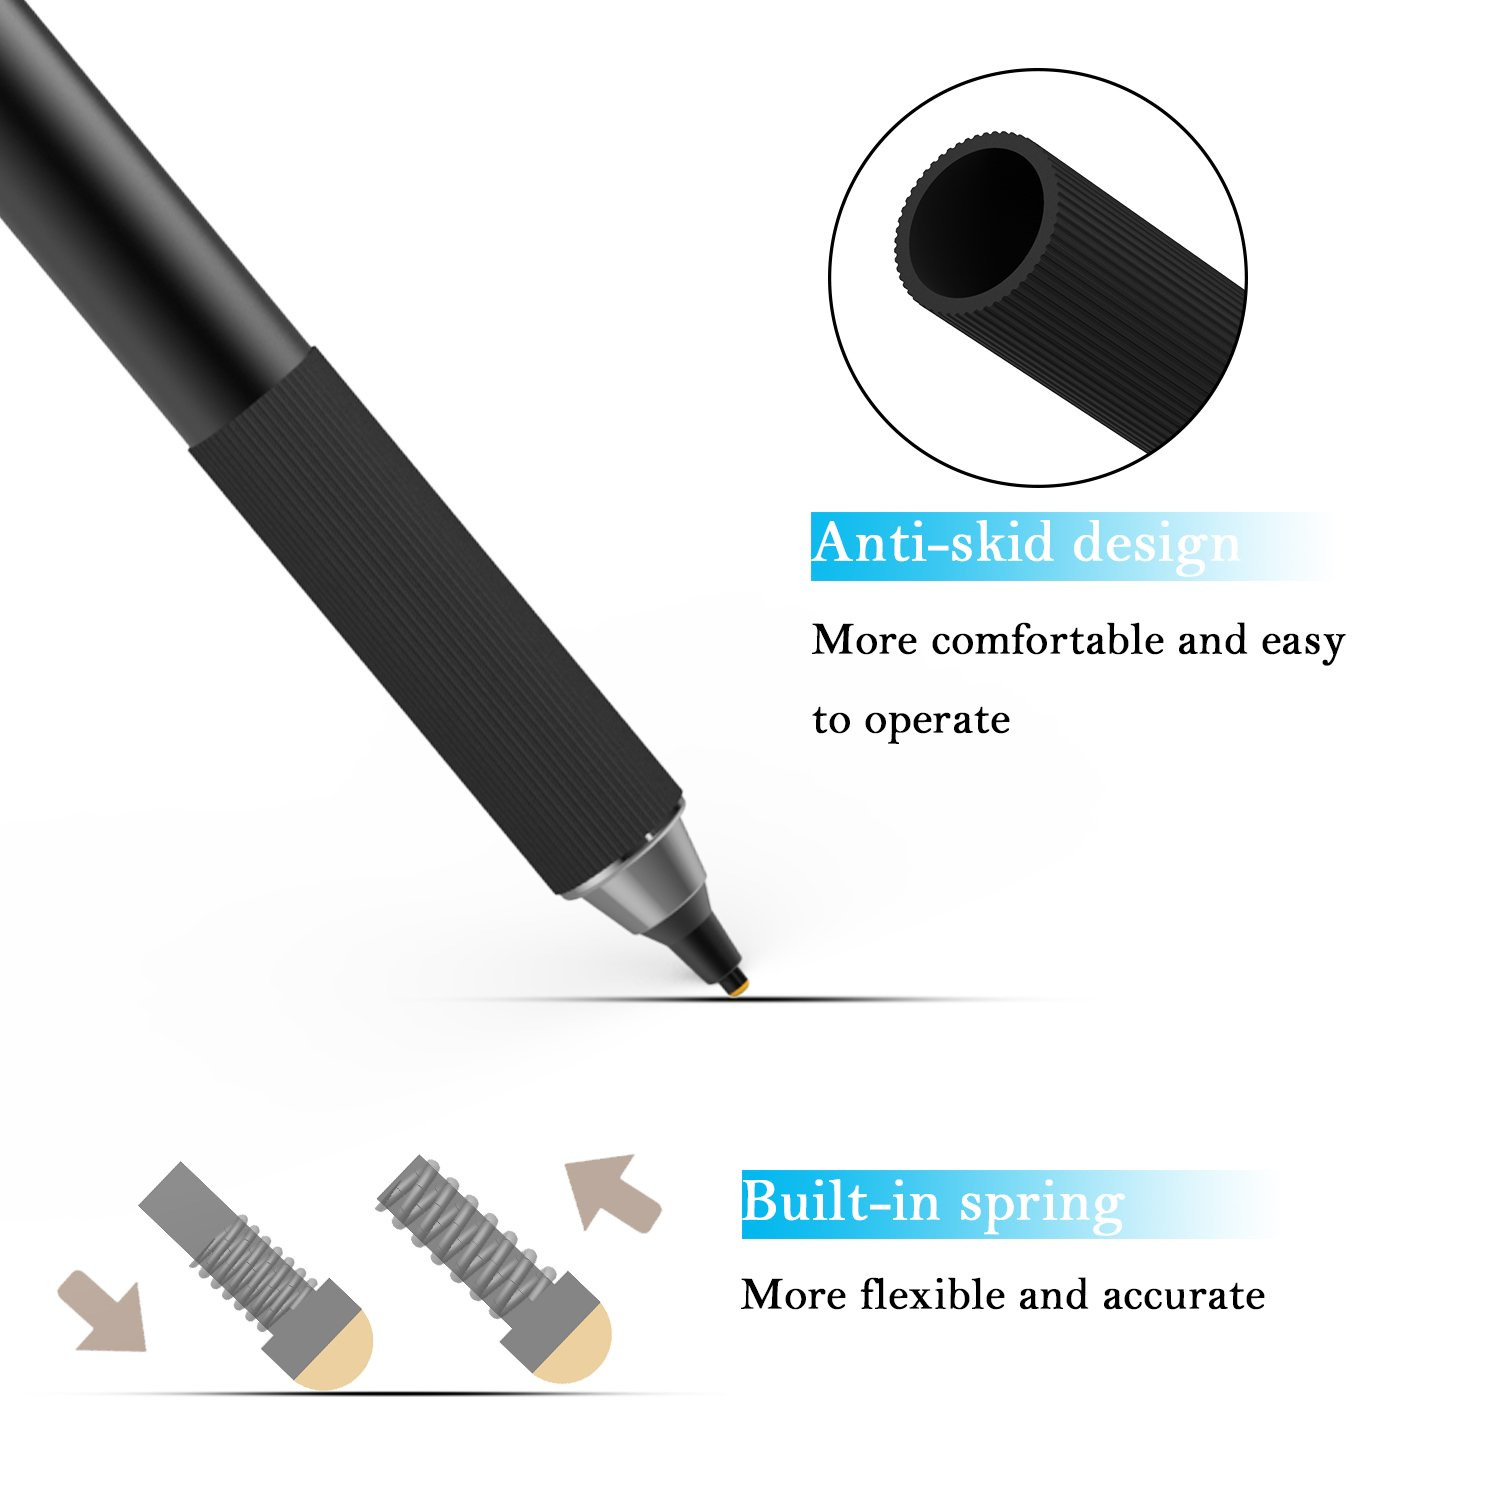 Gouler High-precision Stylus Pen with 2 in 1 Copper & Mesh Fine Tip Rechargeable Capacitive Digital Pen for iPad, iPhone, Android and Most of Touch Screen Devices by Gouler (Image #4)